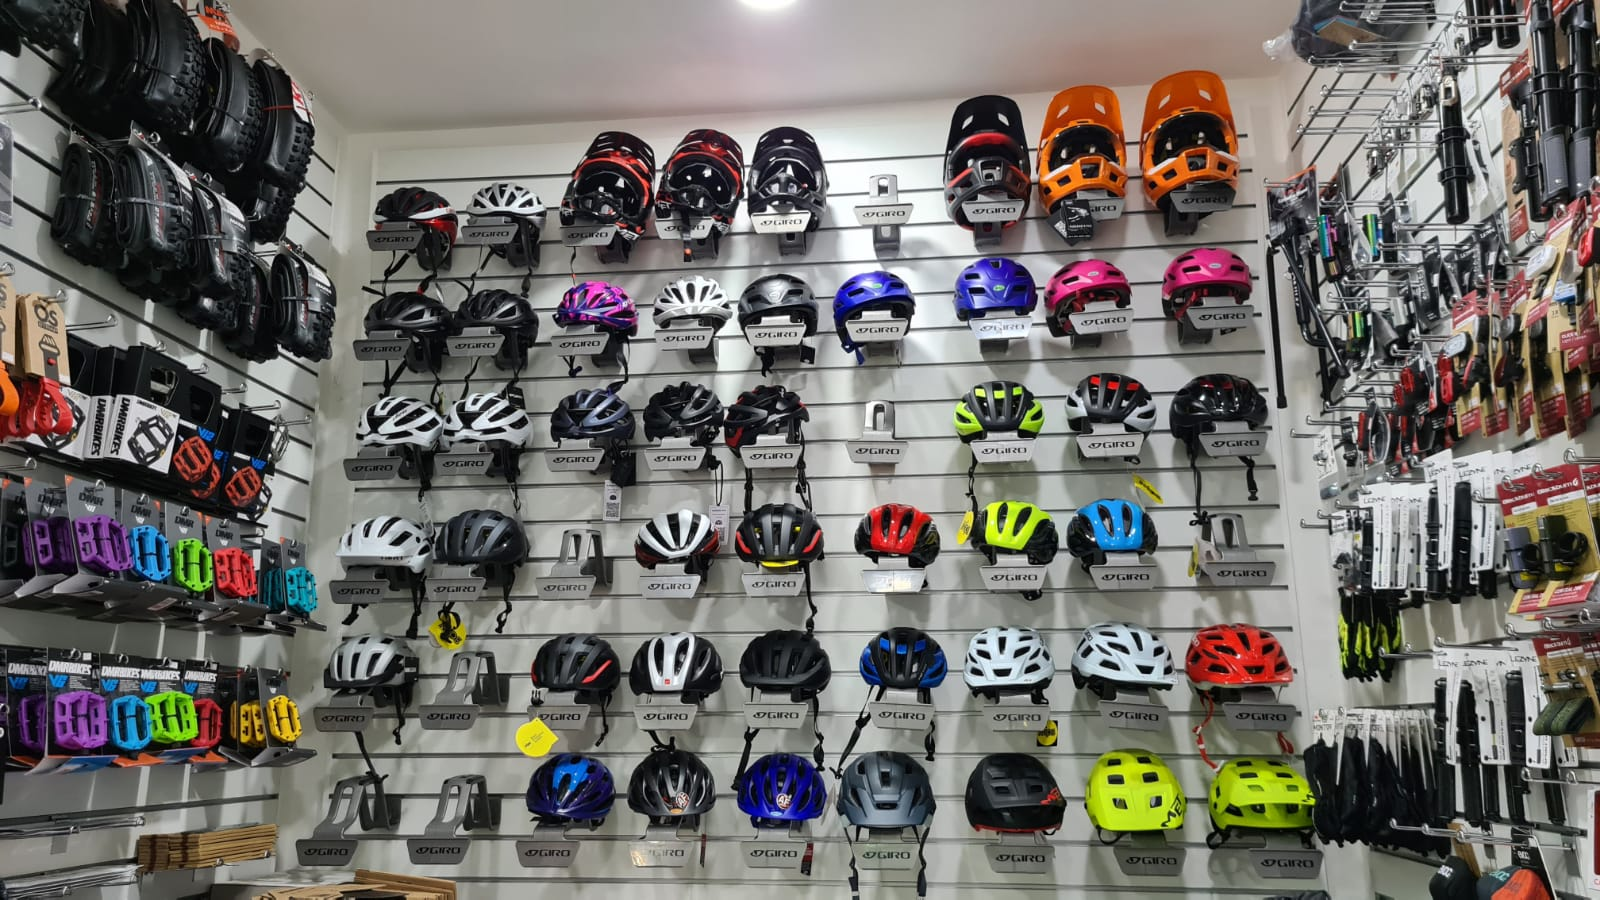 BikeSuite has a wide selection of accessories for bikers